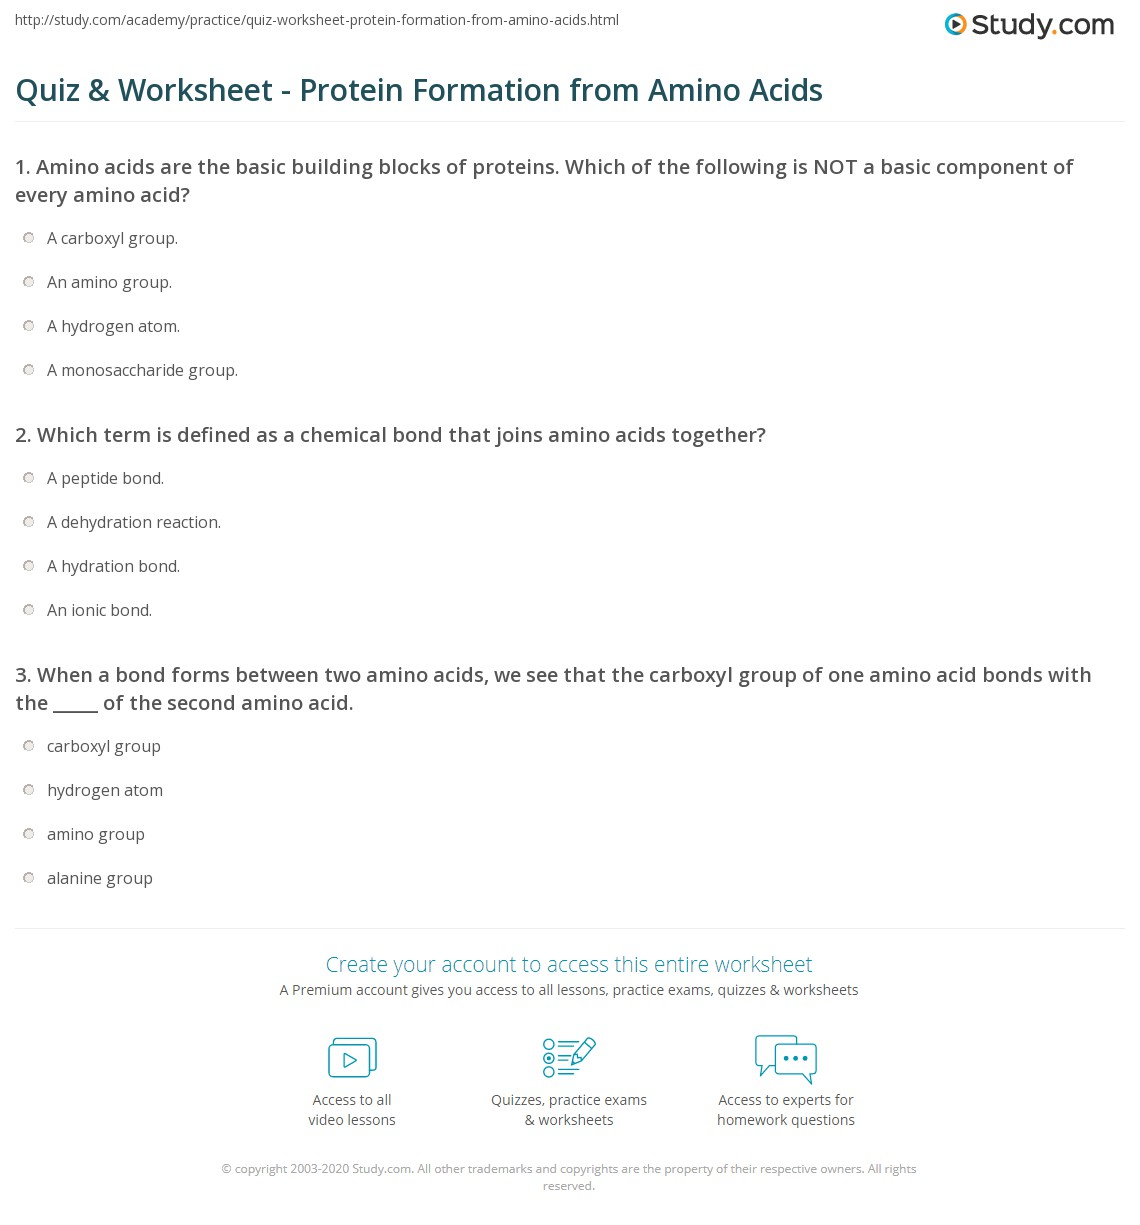 Quiz & Worksheet - Protein Formation from Amino Acids | Study.com